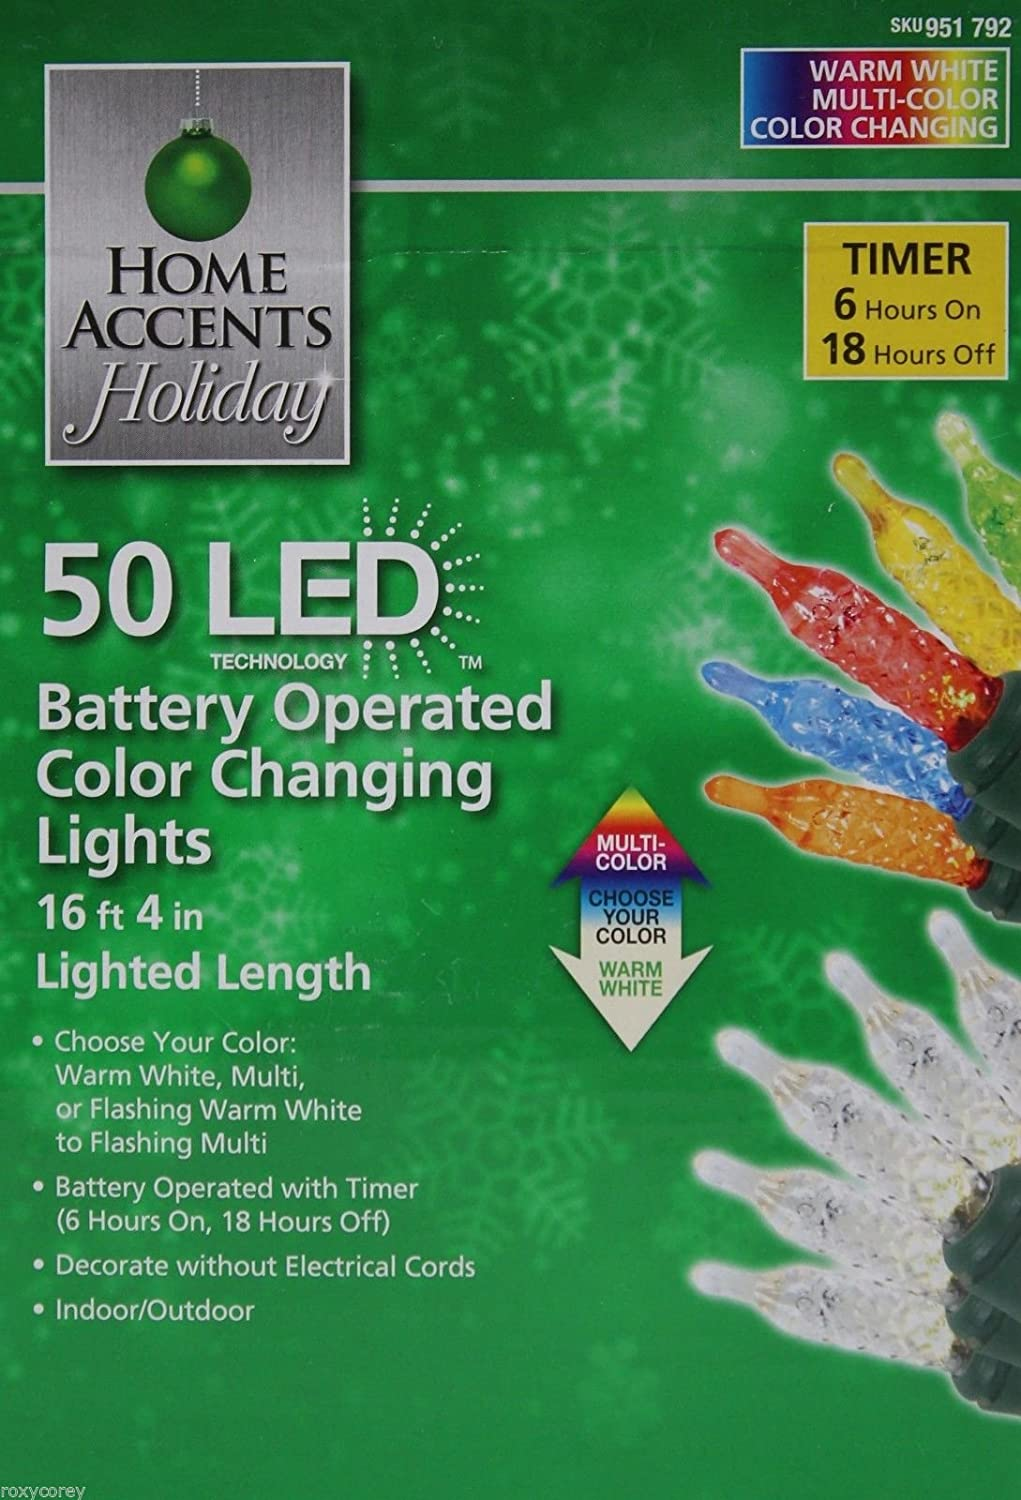 Amazon.com: Home Accents Holiday Party 50 LED Battery Operated Color ...